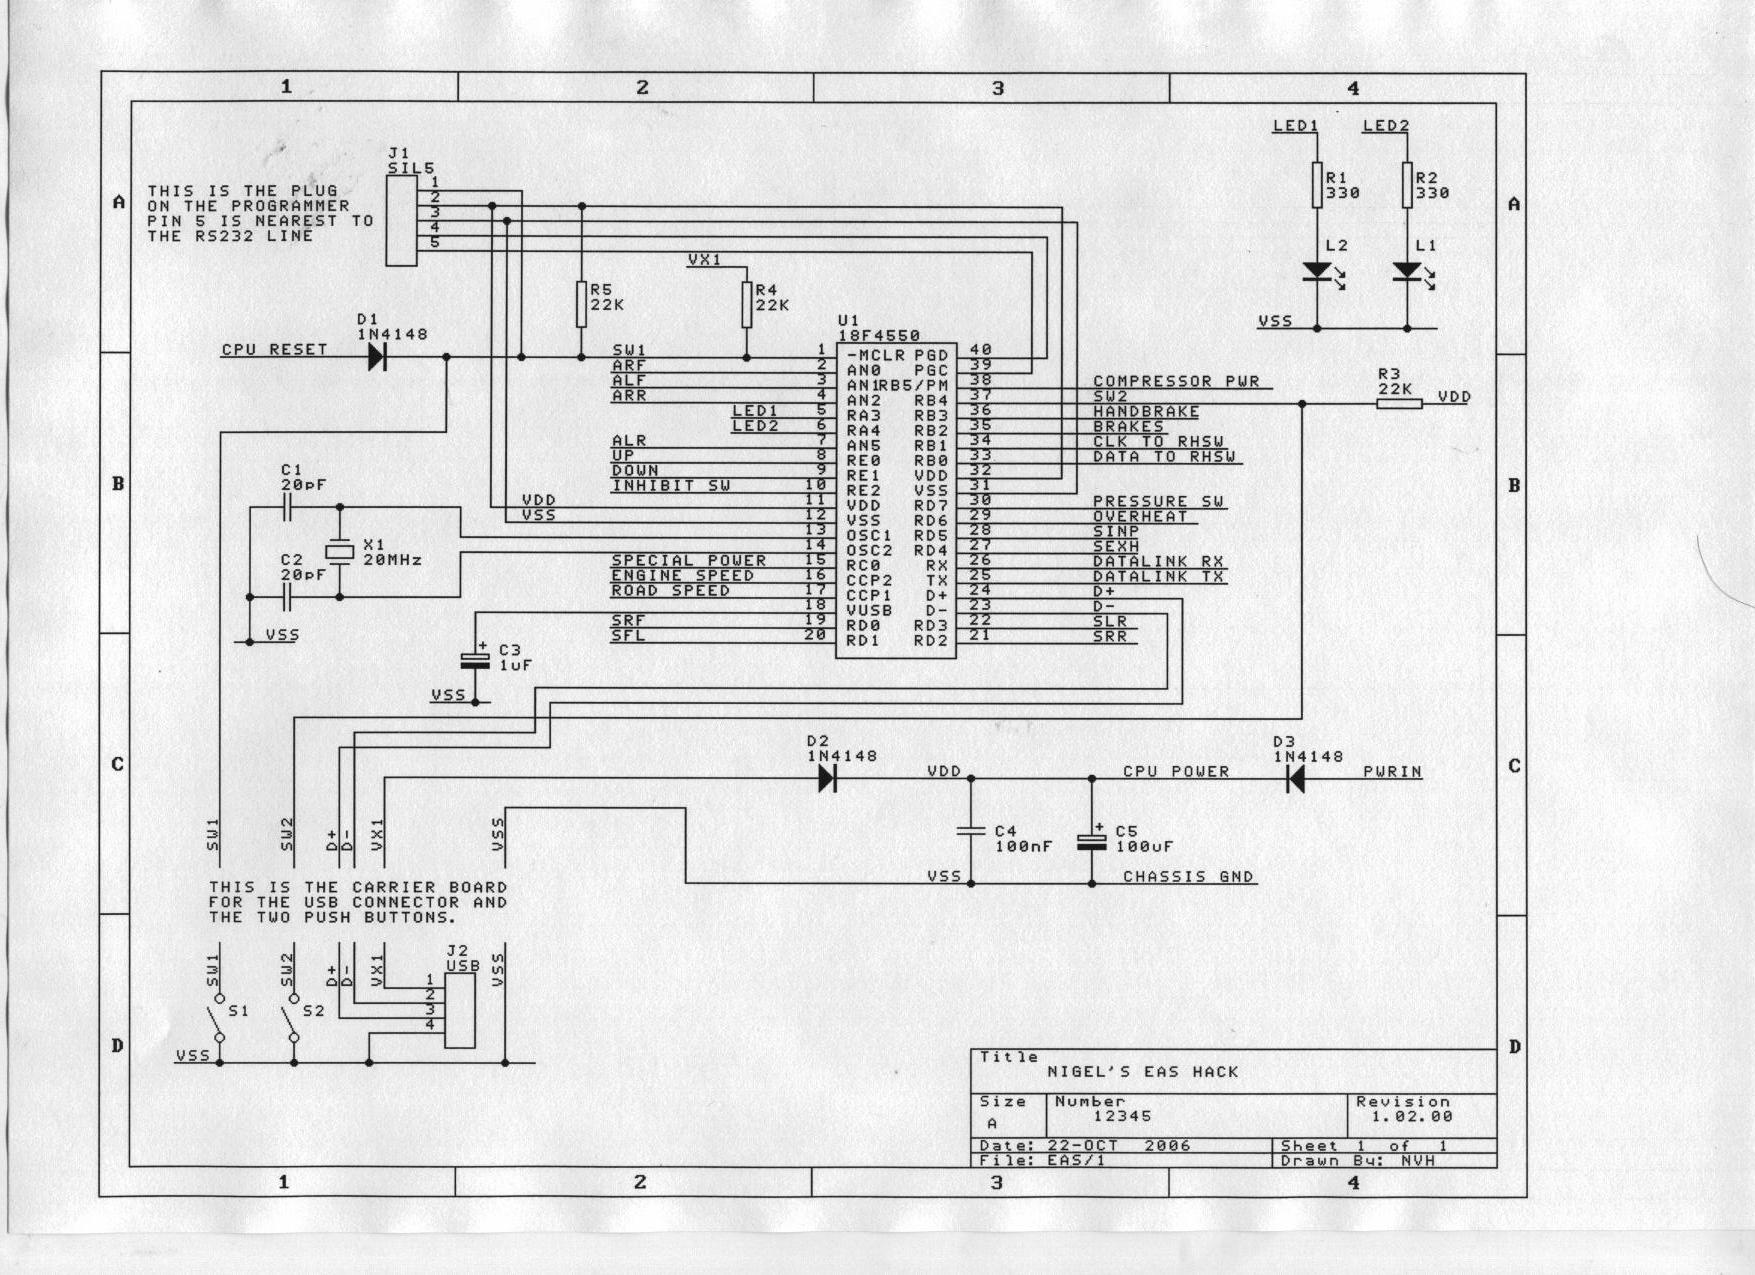 Land Rover Lr3 Fuse Wiring Diagram Schematics Diagrams Box 2004 Hse 1998 Elsalvadorla 2006 Heat System